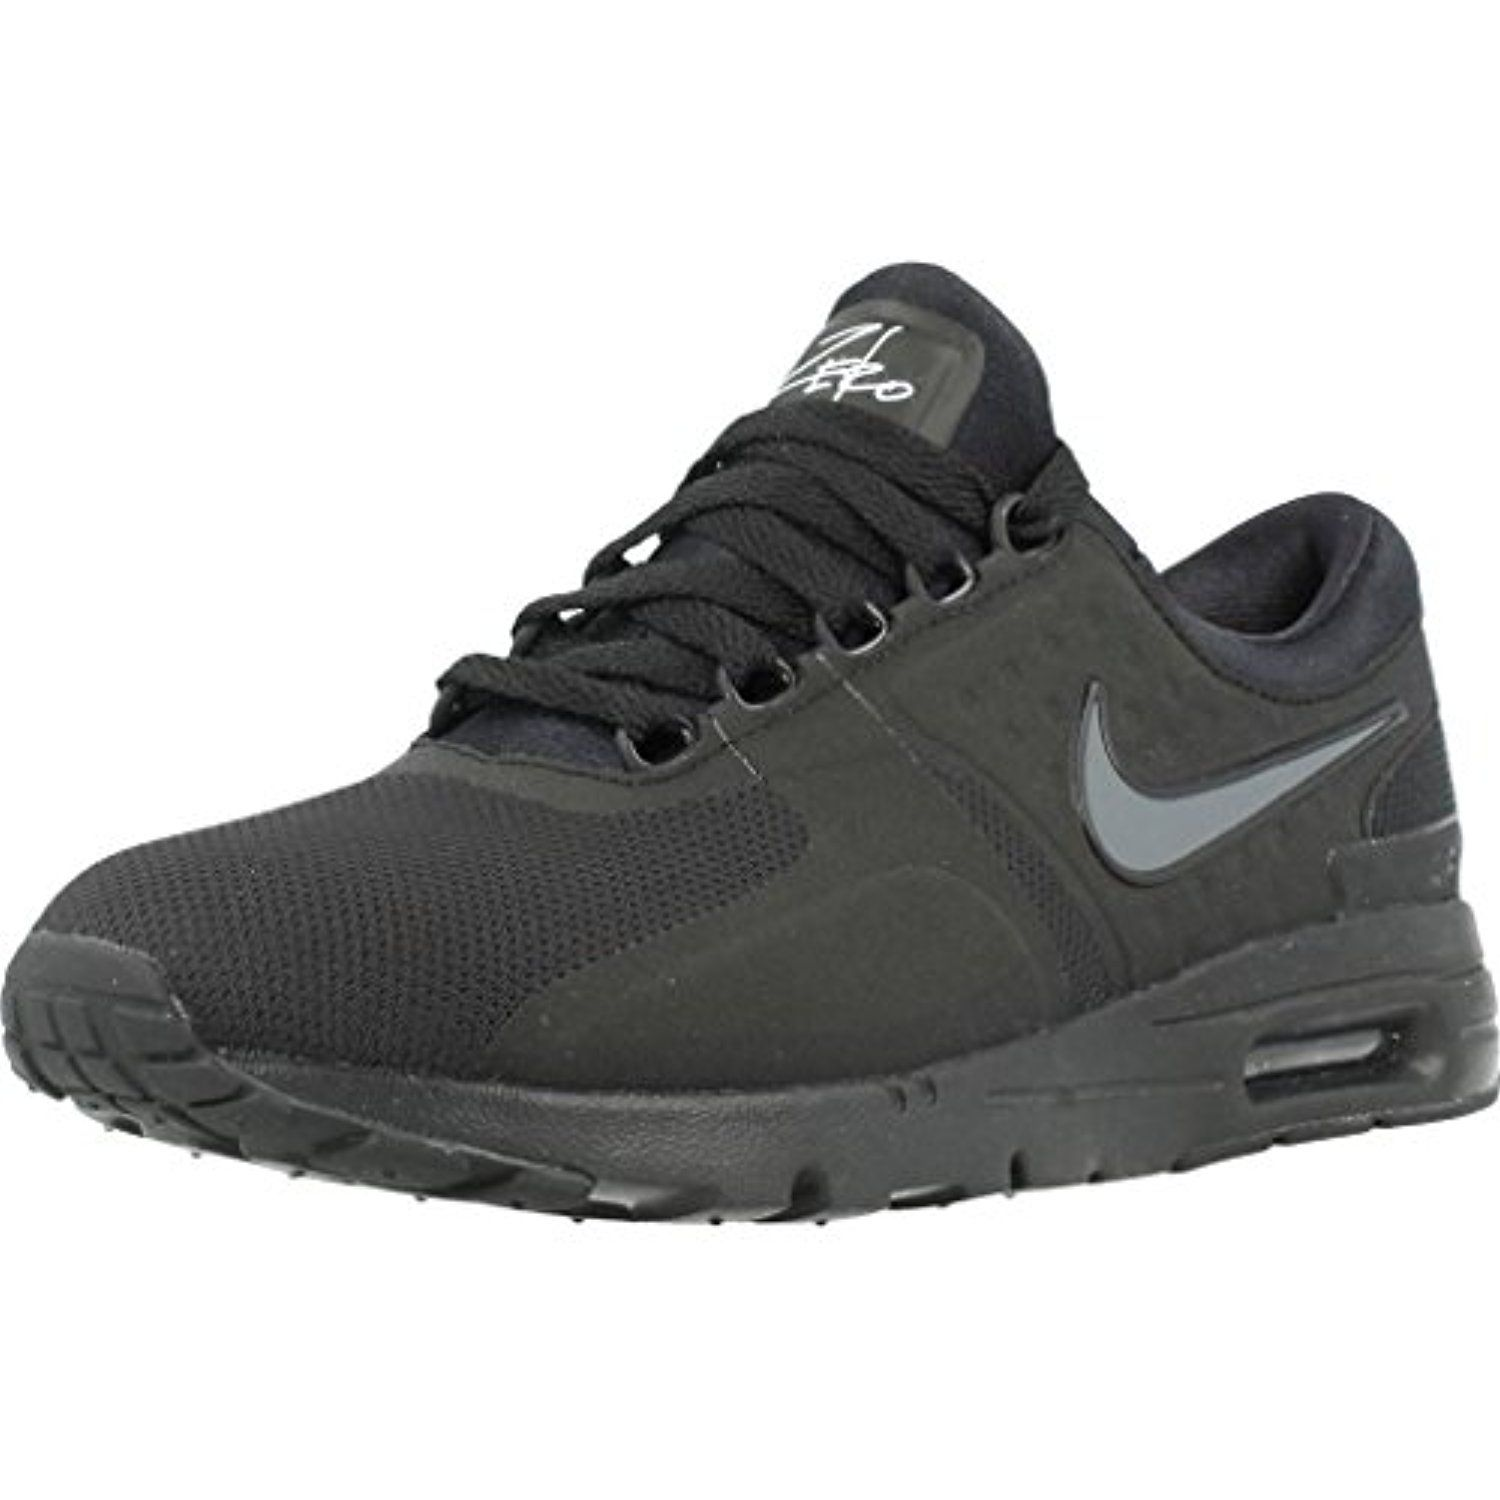 475db38a592538 857661-012 WOMEN W AIR MAX ZERO NIKE BLACK DARK GREY WHITE    You can get  additional details at the image link. (This is an affiliate link)  Shoes